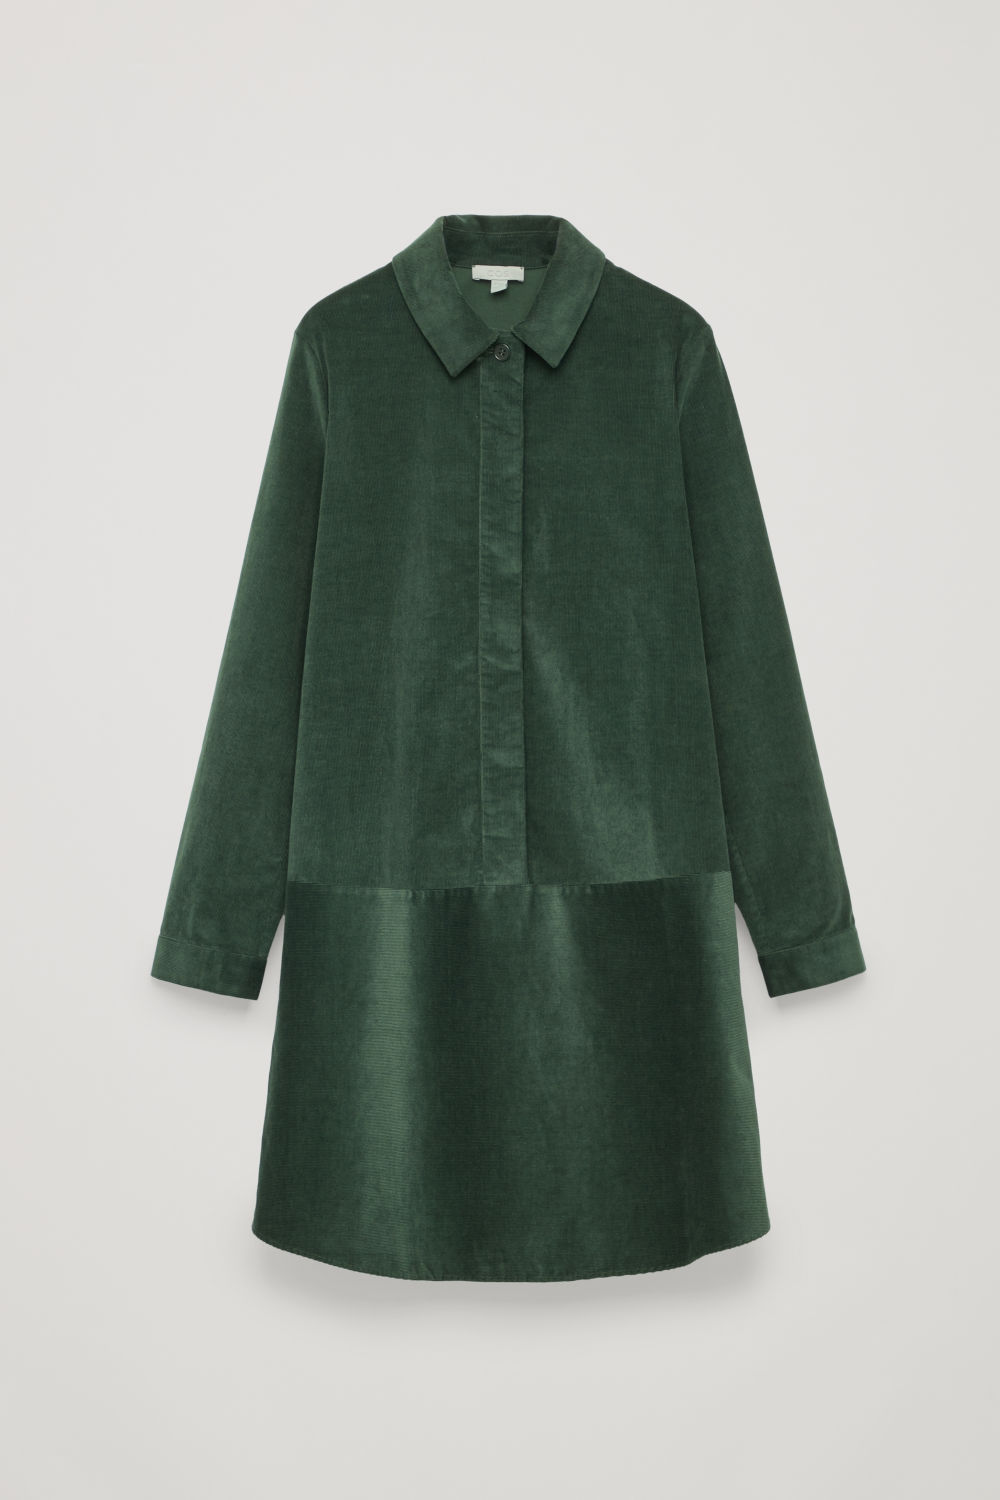 A-LINE CORDUROY SHIRT DRESS